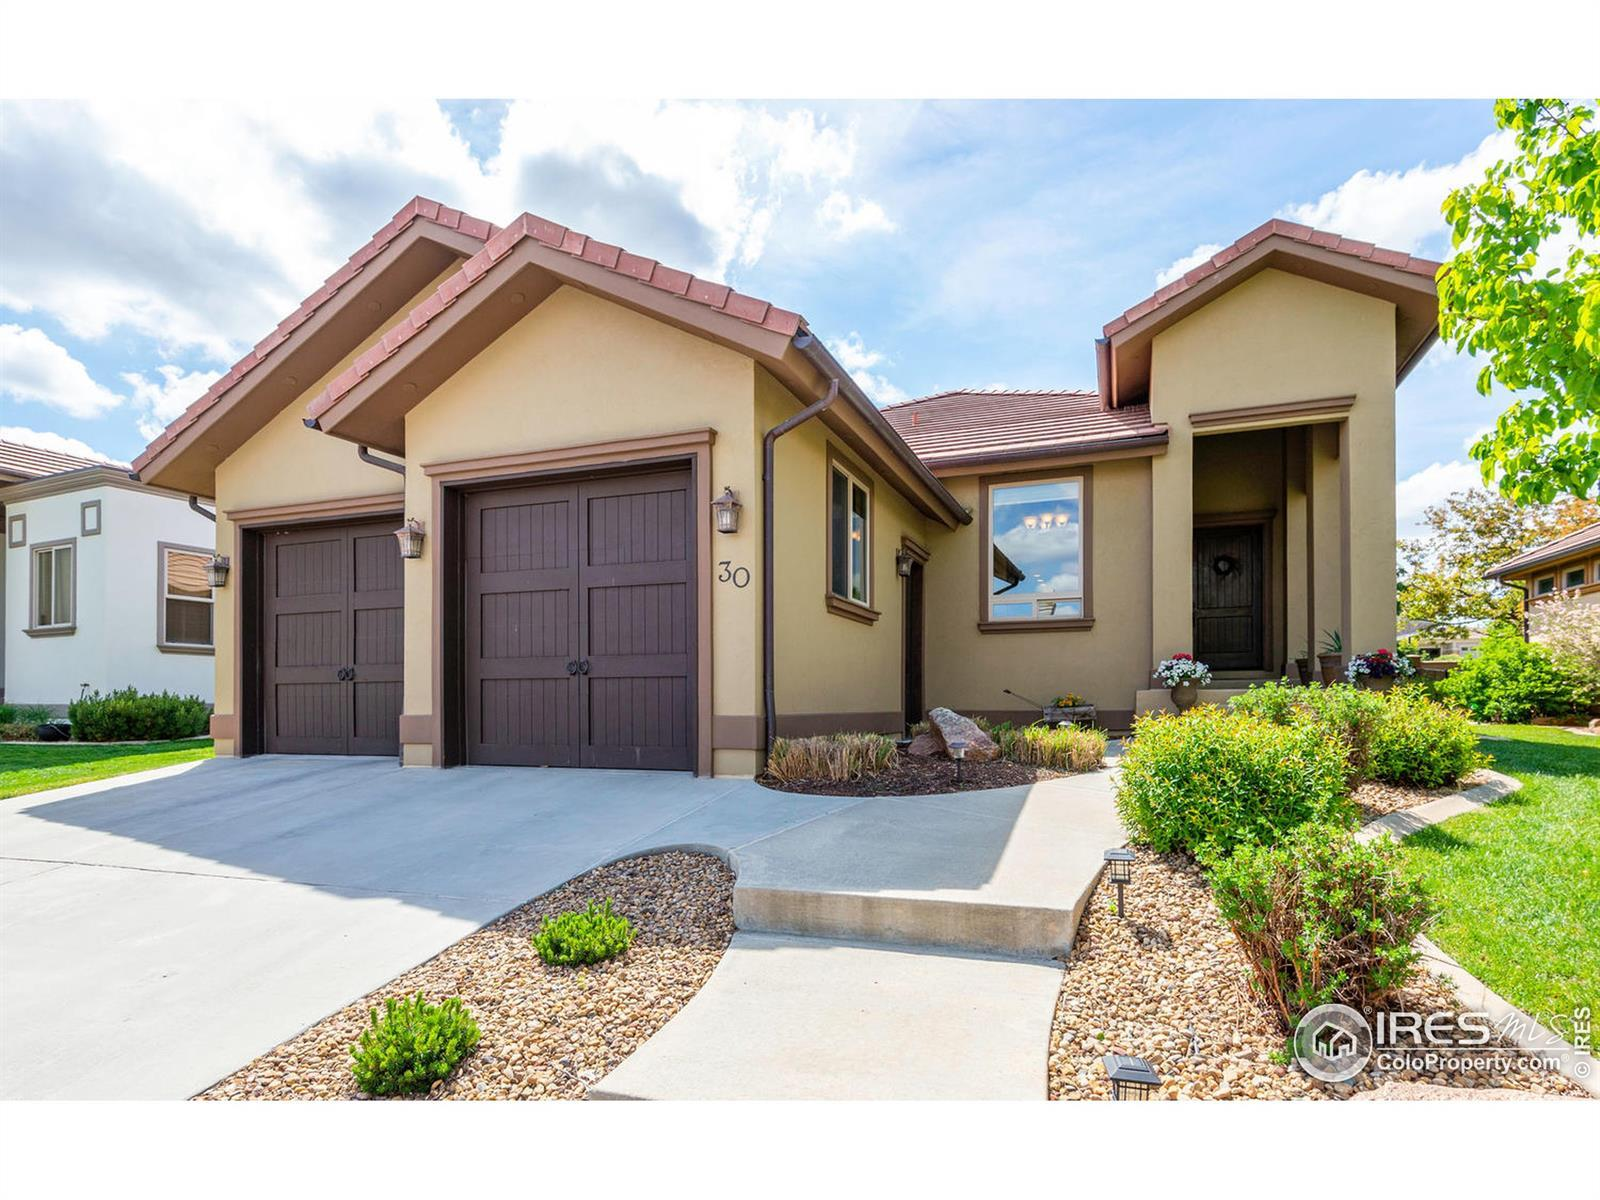 4014 S Lemay Avenue #30, Fort Collins, CO 80525 - #: IR942239